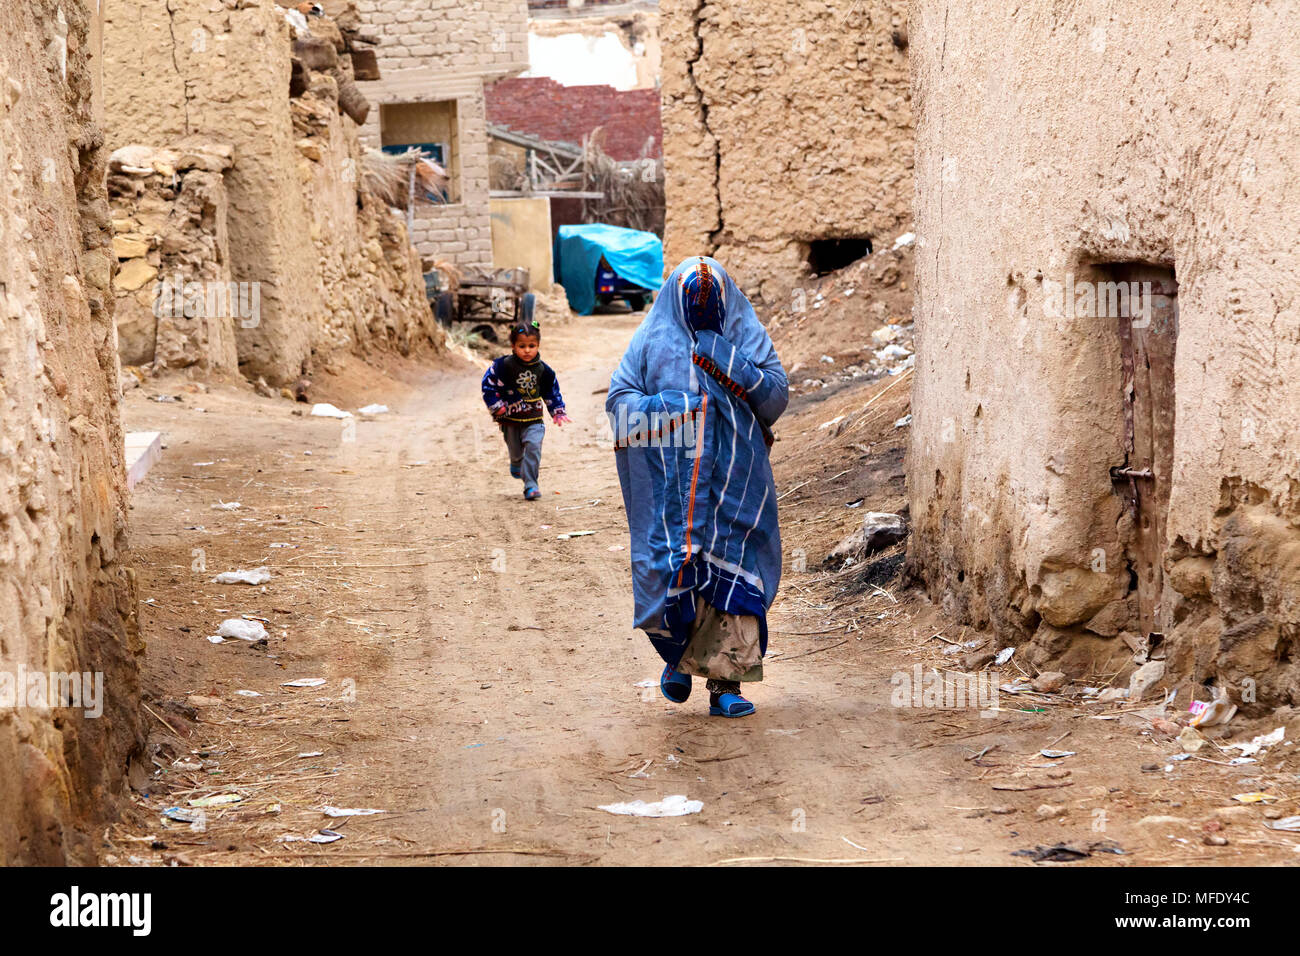 A woman in a burqa walking down a street of the old city of Siwa, Egypt - Stock Image